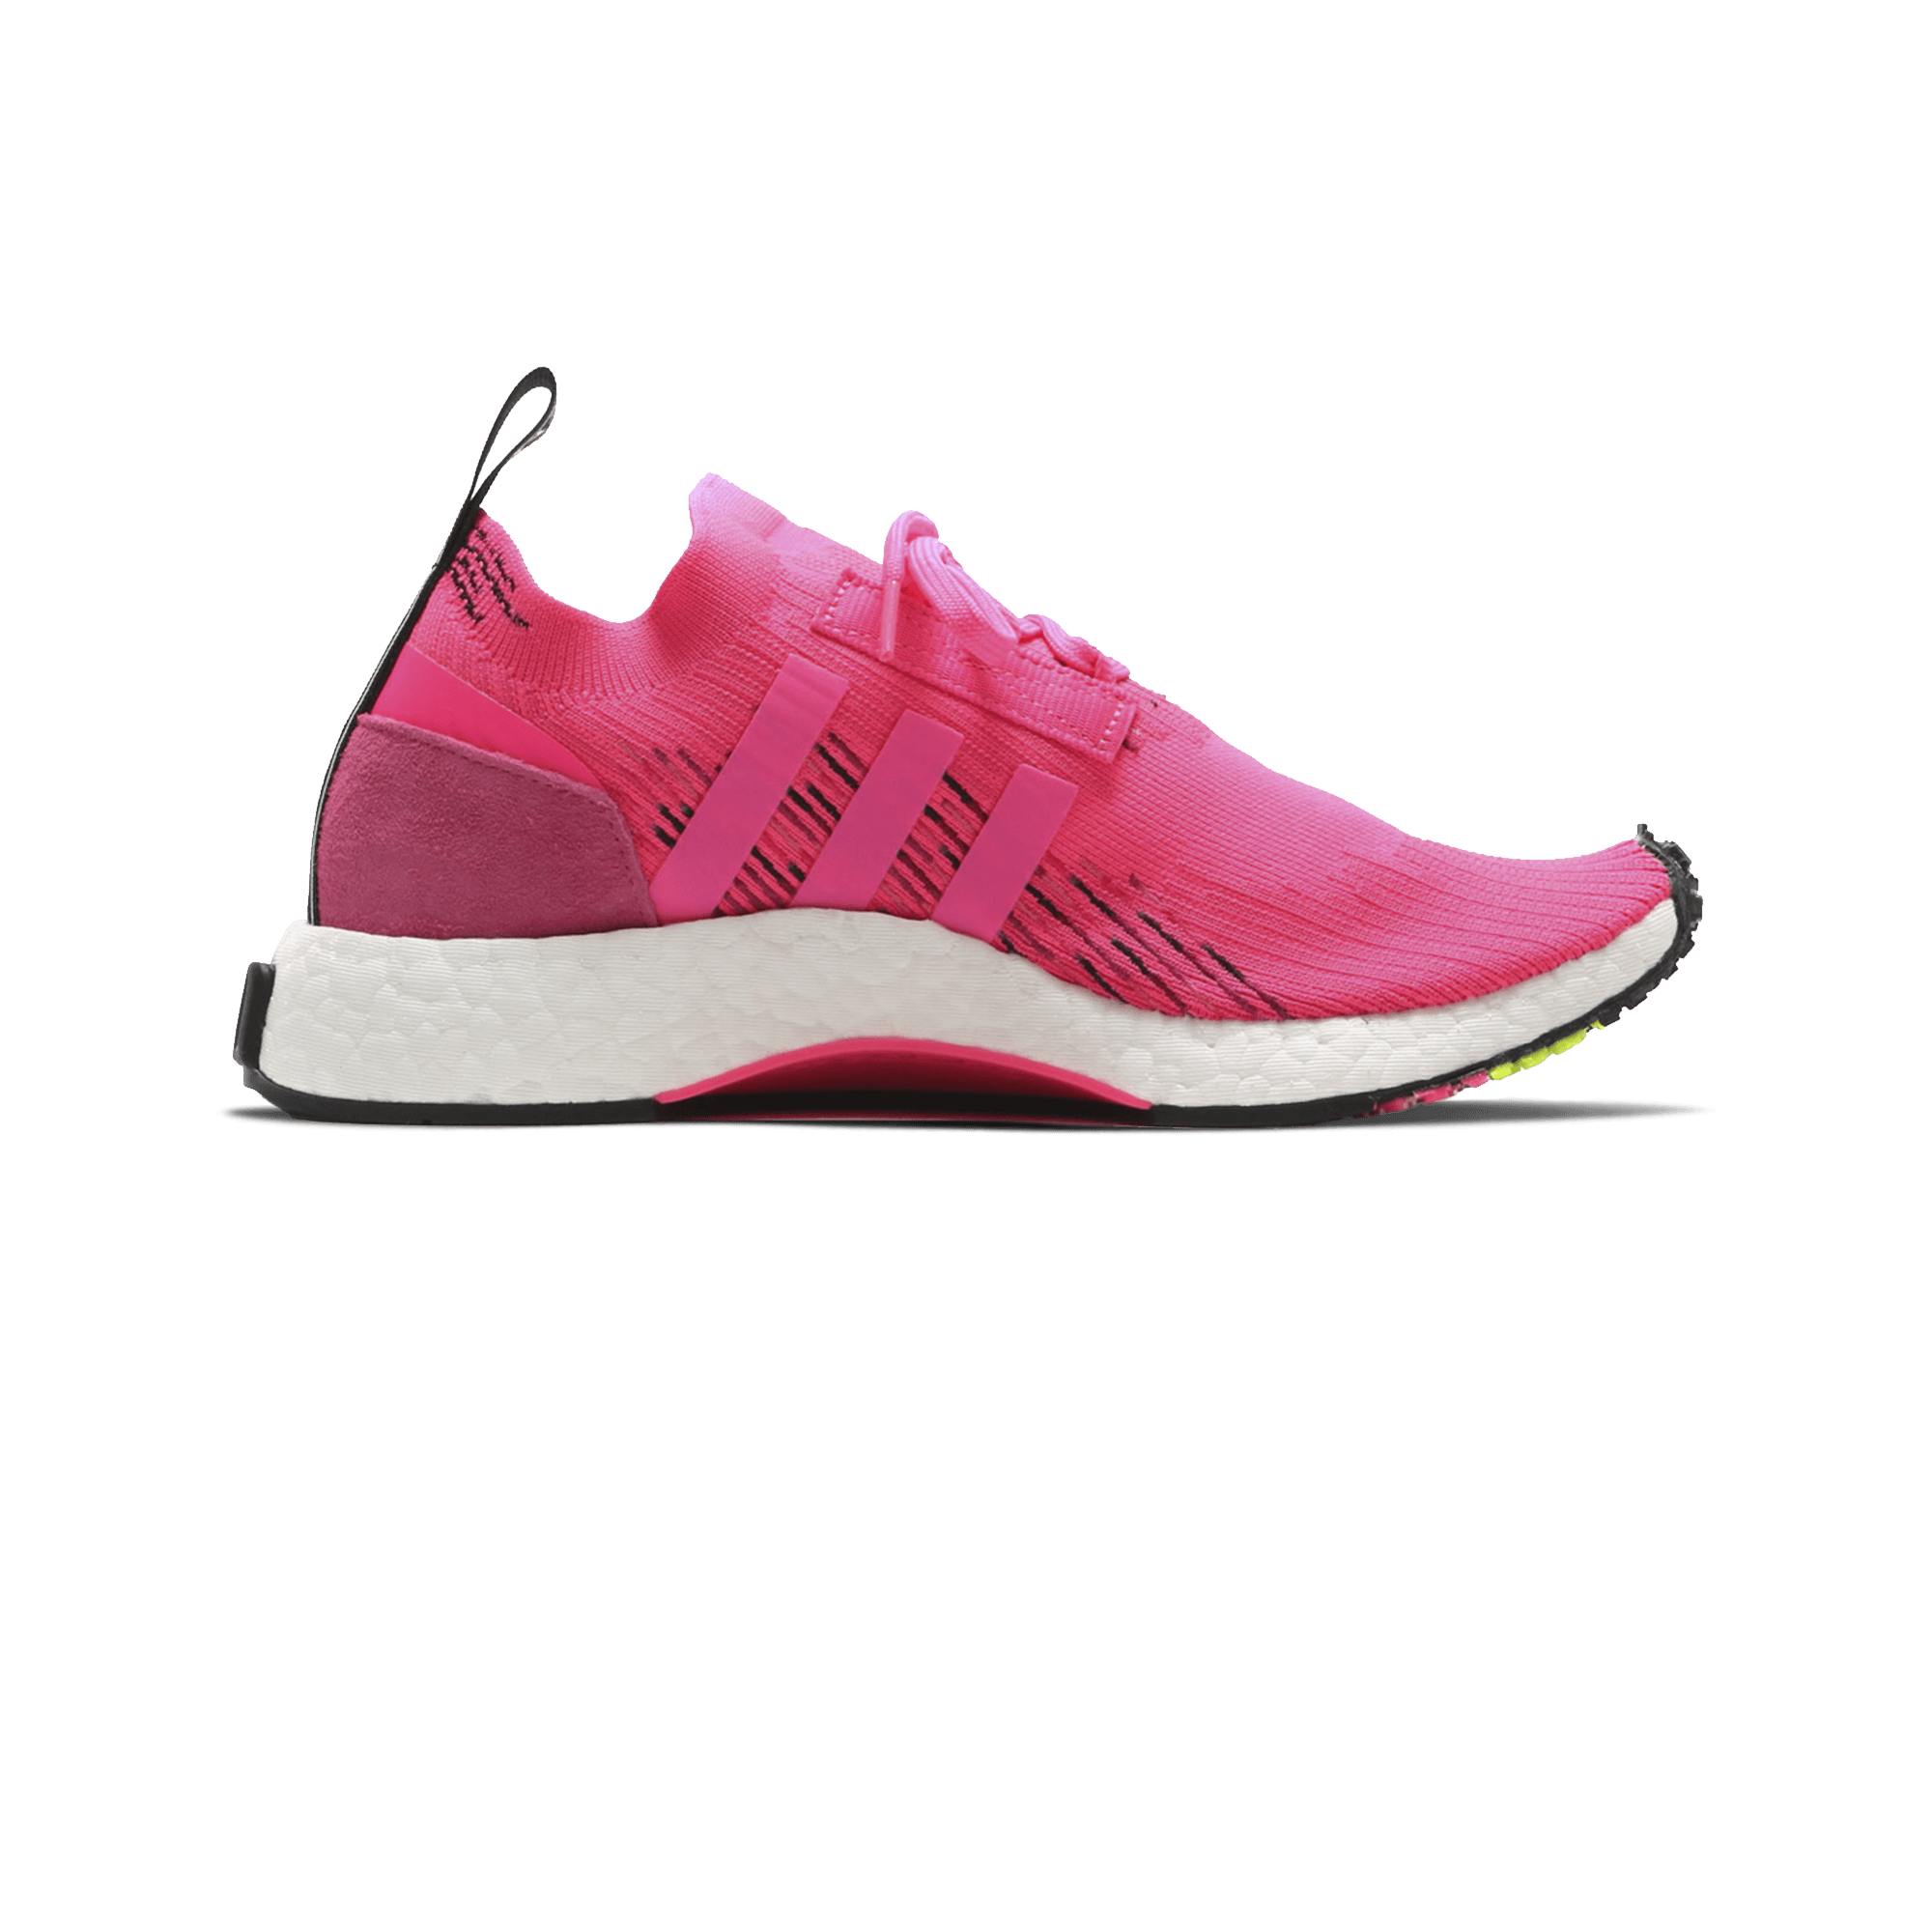 NMD Racer PK pink punch